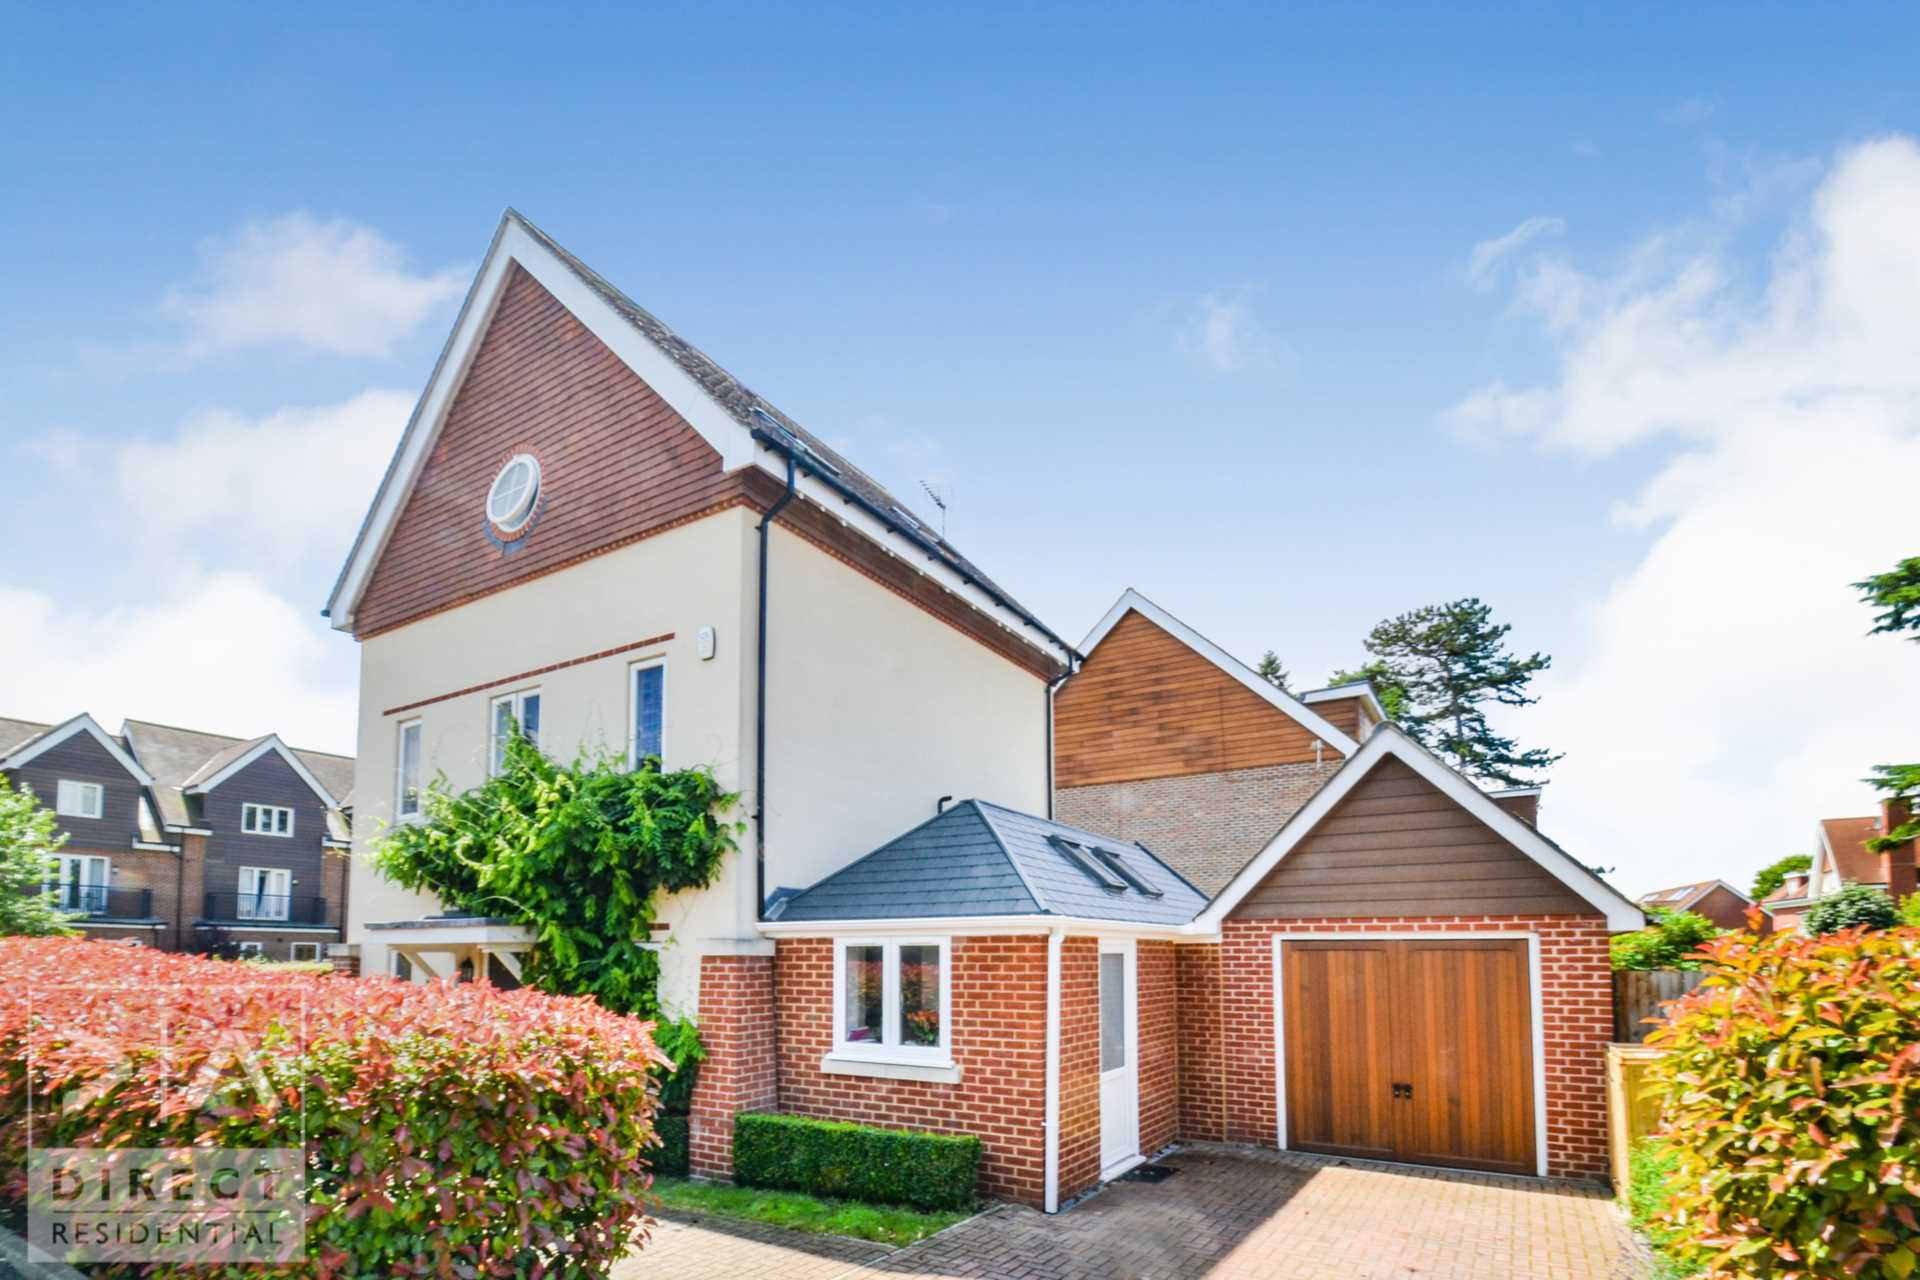 Direct Residential - 4 Bedroom Detached, Mulberry Way, Ashtead, KT21 2FE